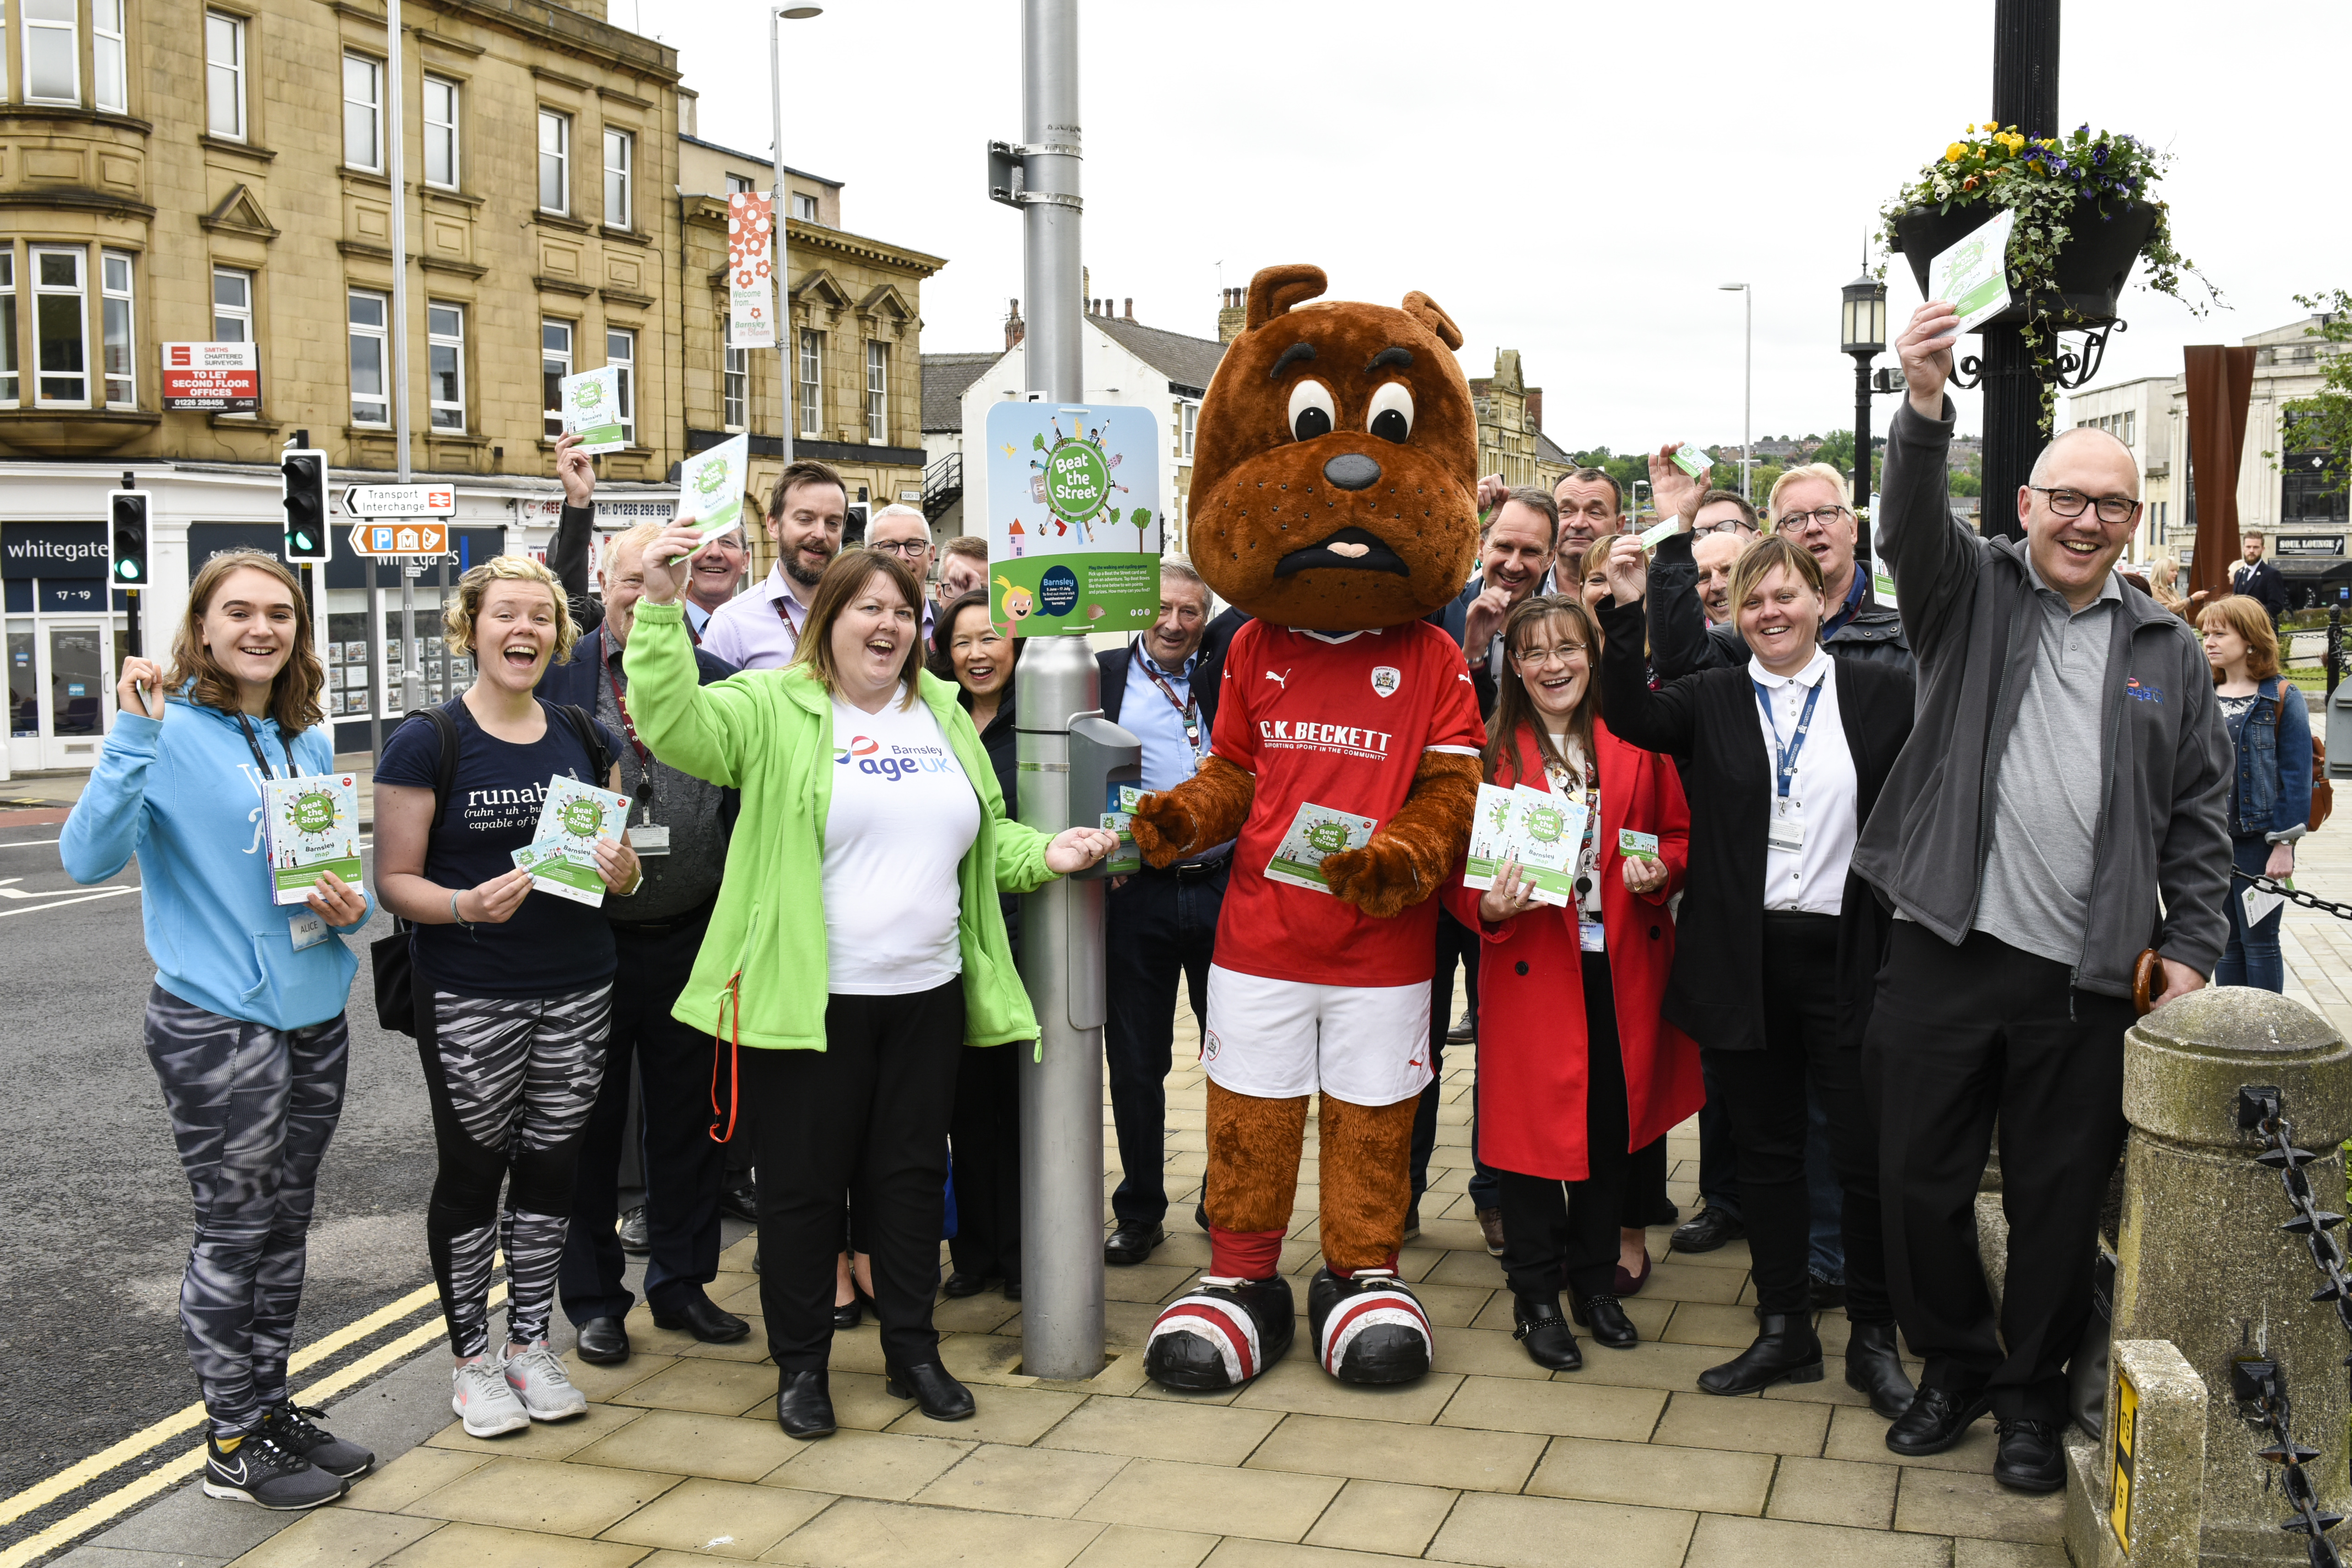 People with the Barnsley football club mascot - Toby Tyke in Barnsley Town centre